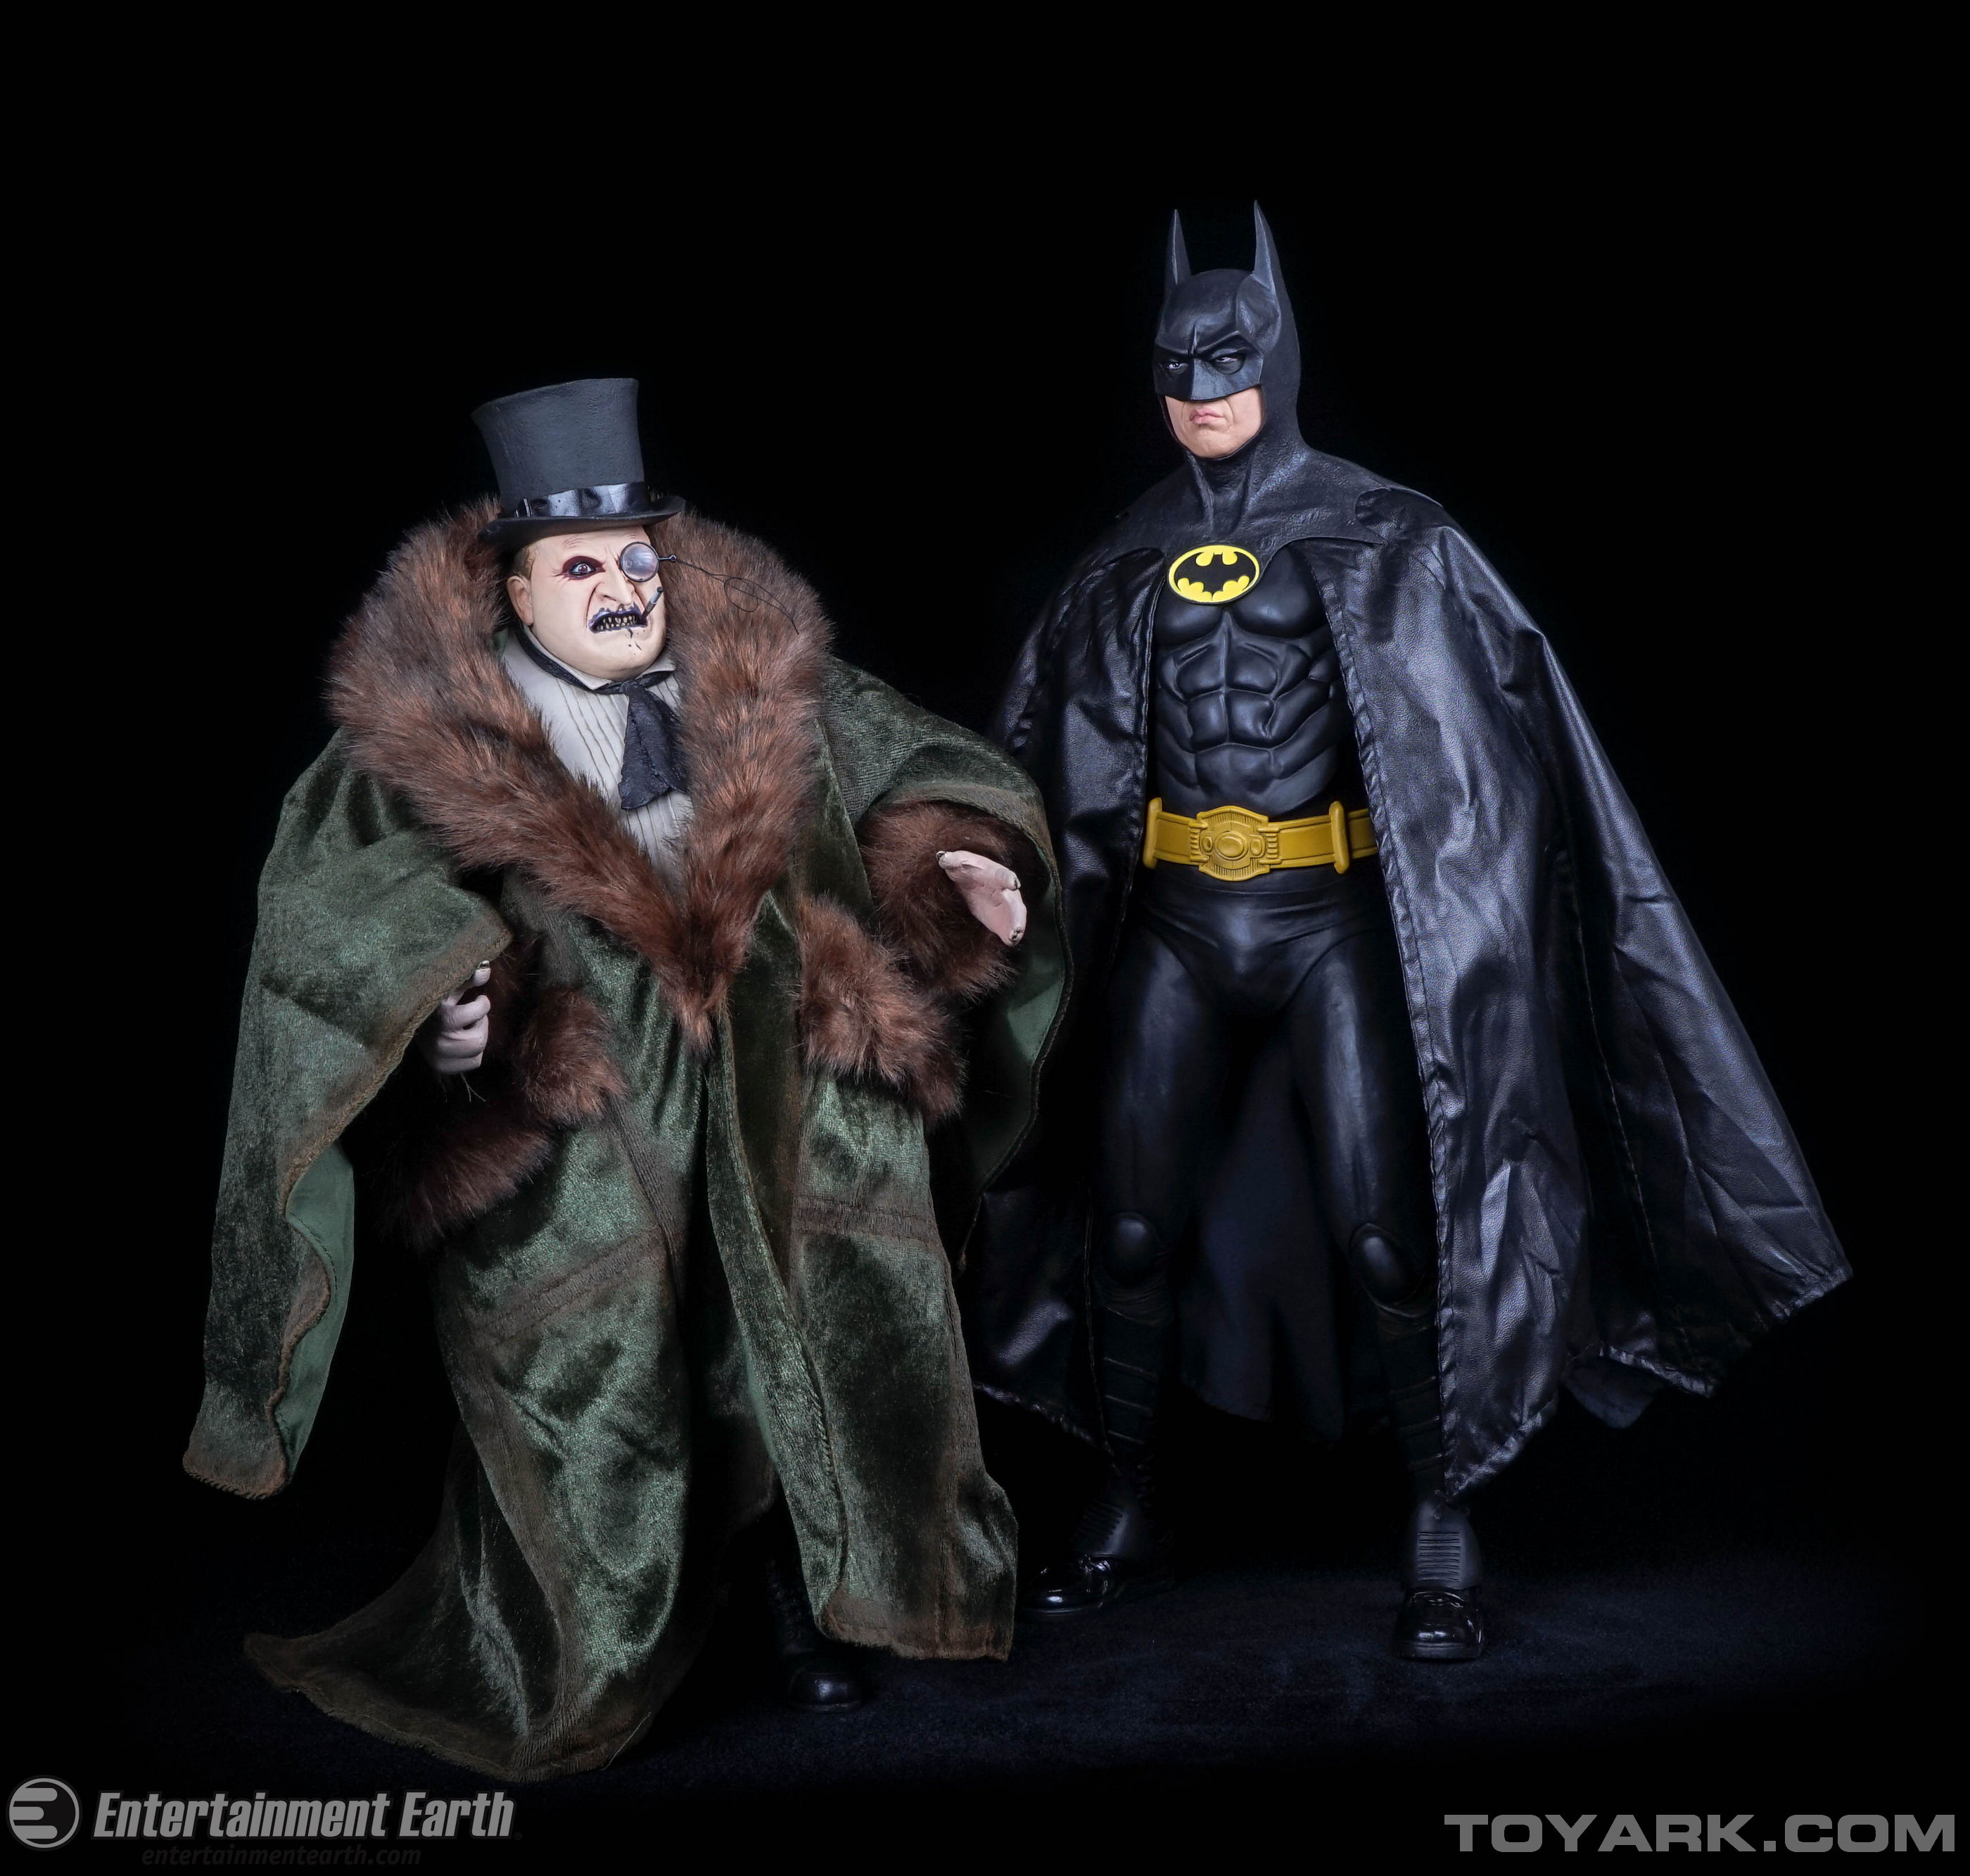 http://news.toyark.com/wp-content/uploads/sites/4/2015/09/NECA-Batman-Returns-Penguin-054.jpg